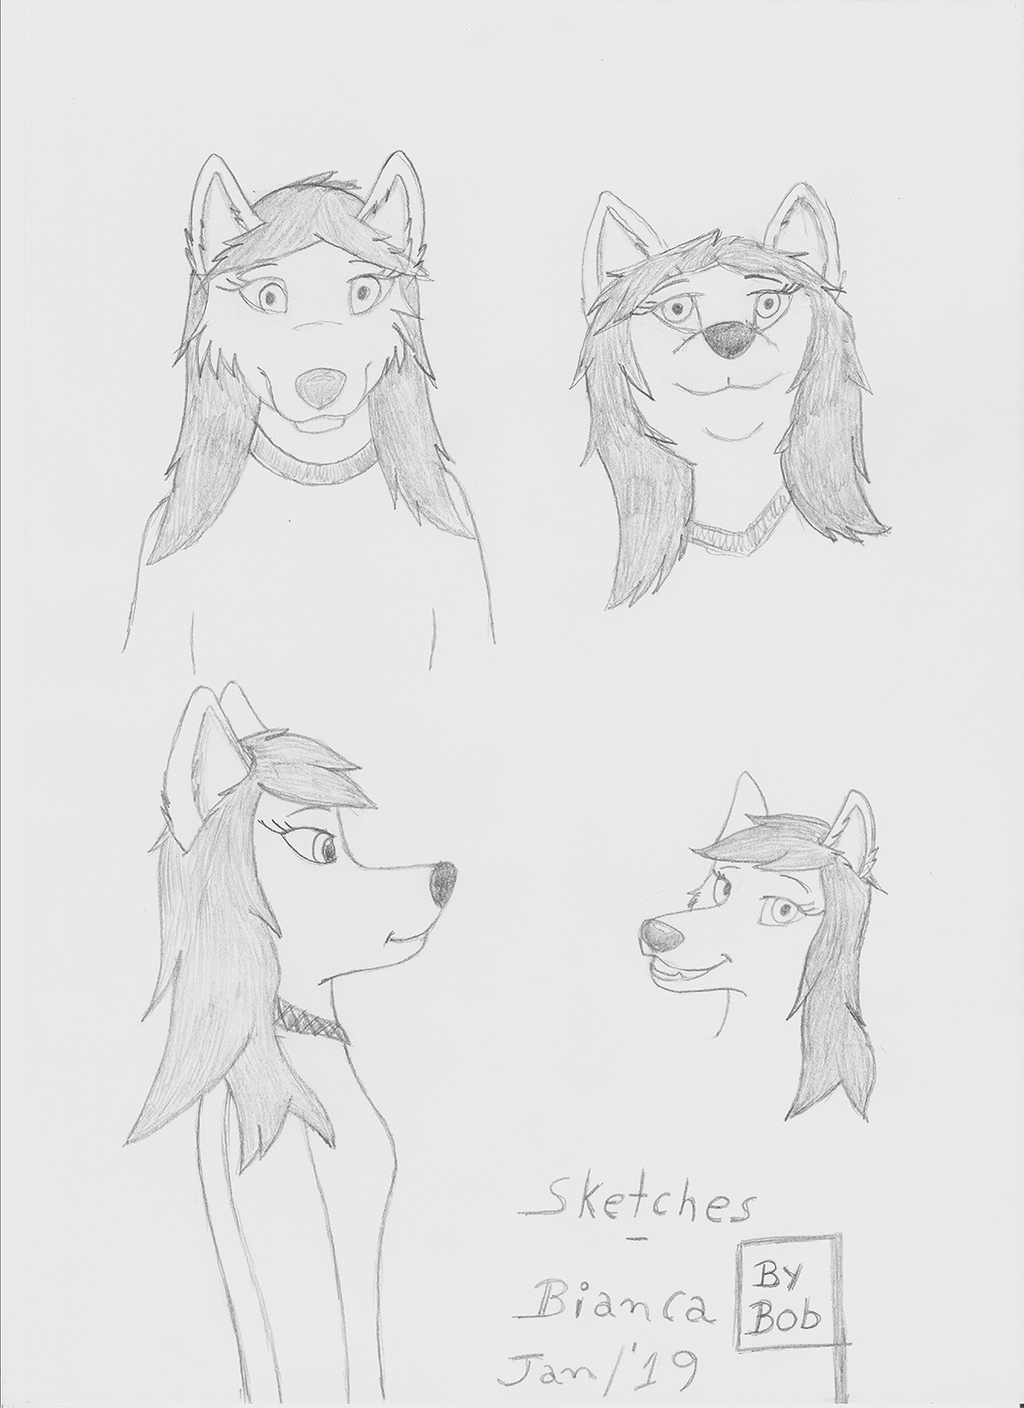 Most recent image: Sketches - Bianca